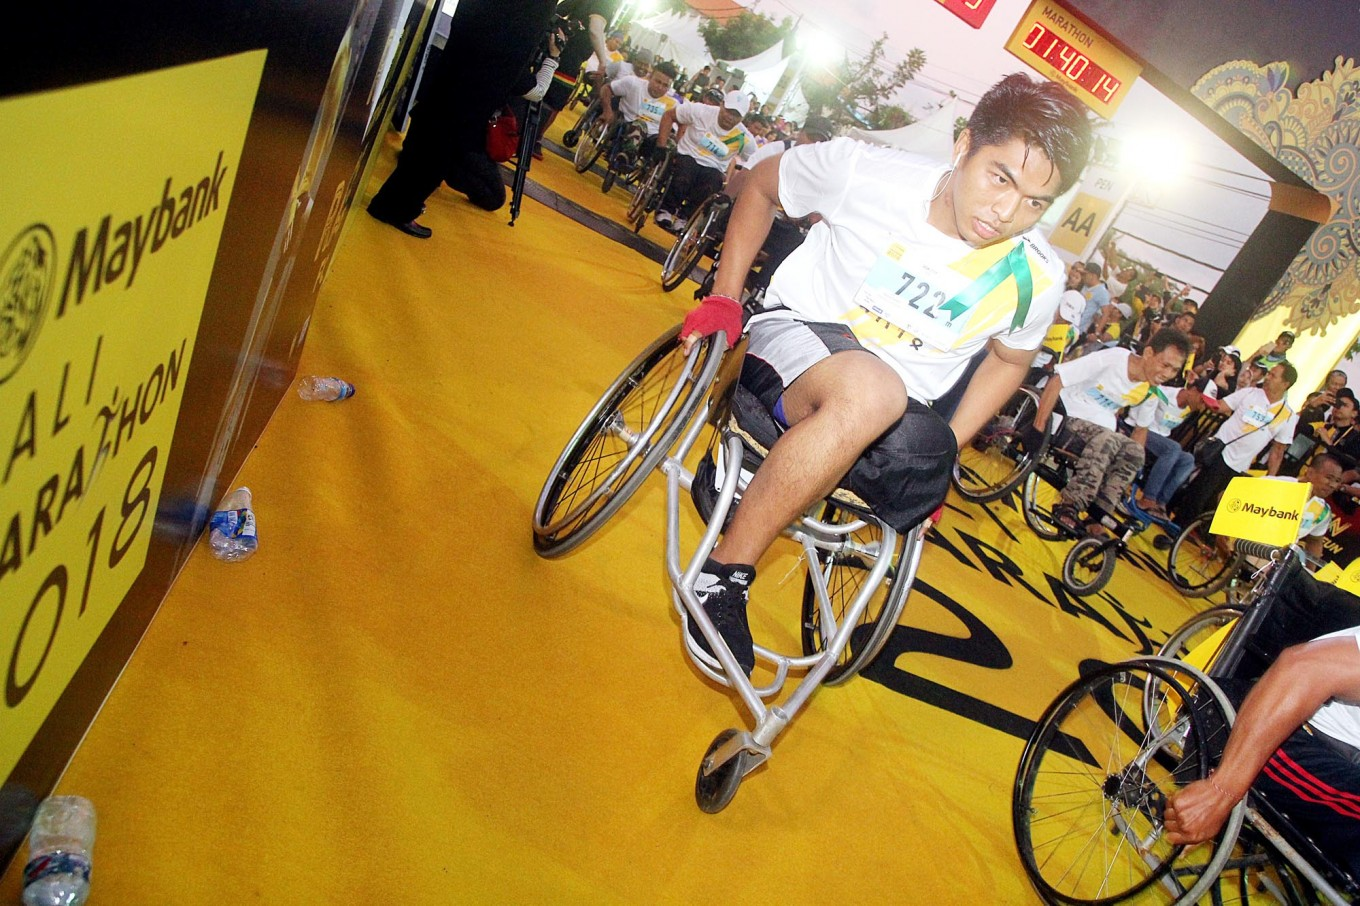 Inclusive race: A man in a wheelchair joins the 2018 Maybank Bali Marathon's wheelchair category on Sept. 9 in Gianyar, Bali. As many as 52 disabled athletes took part in the category.